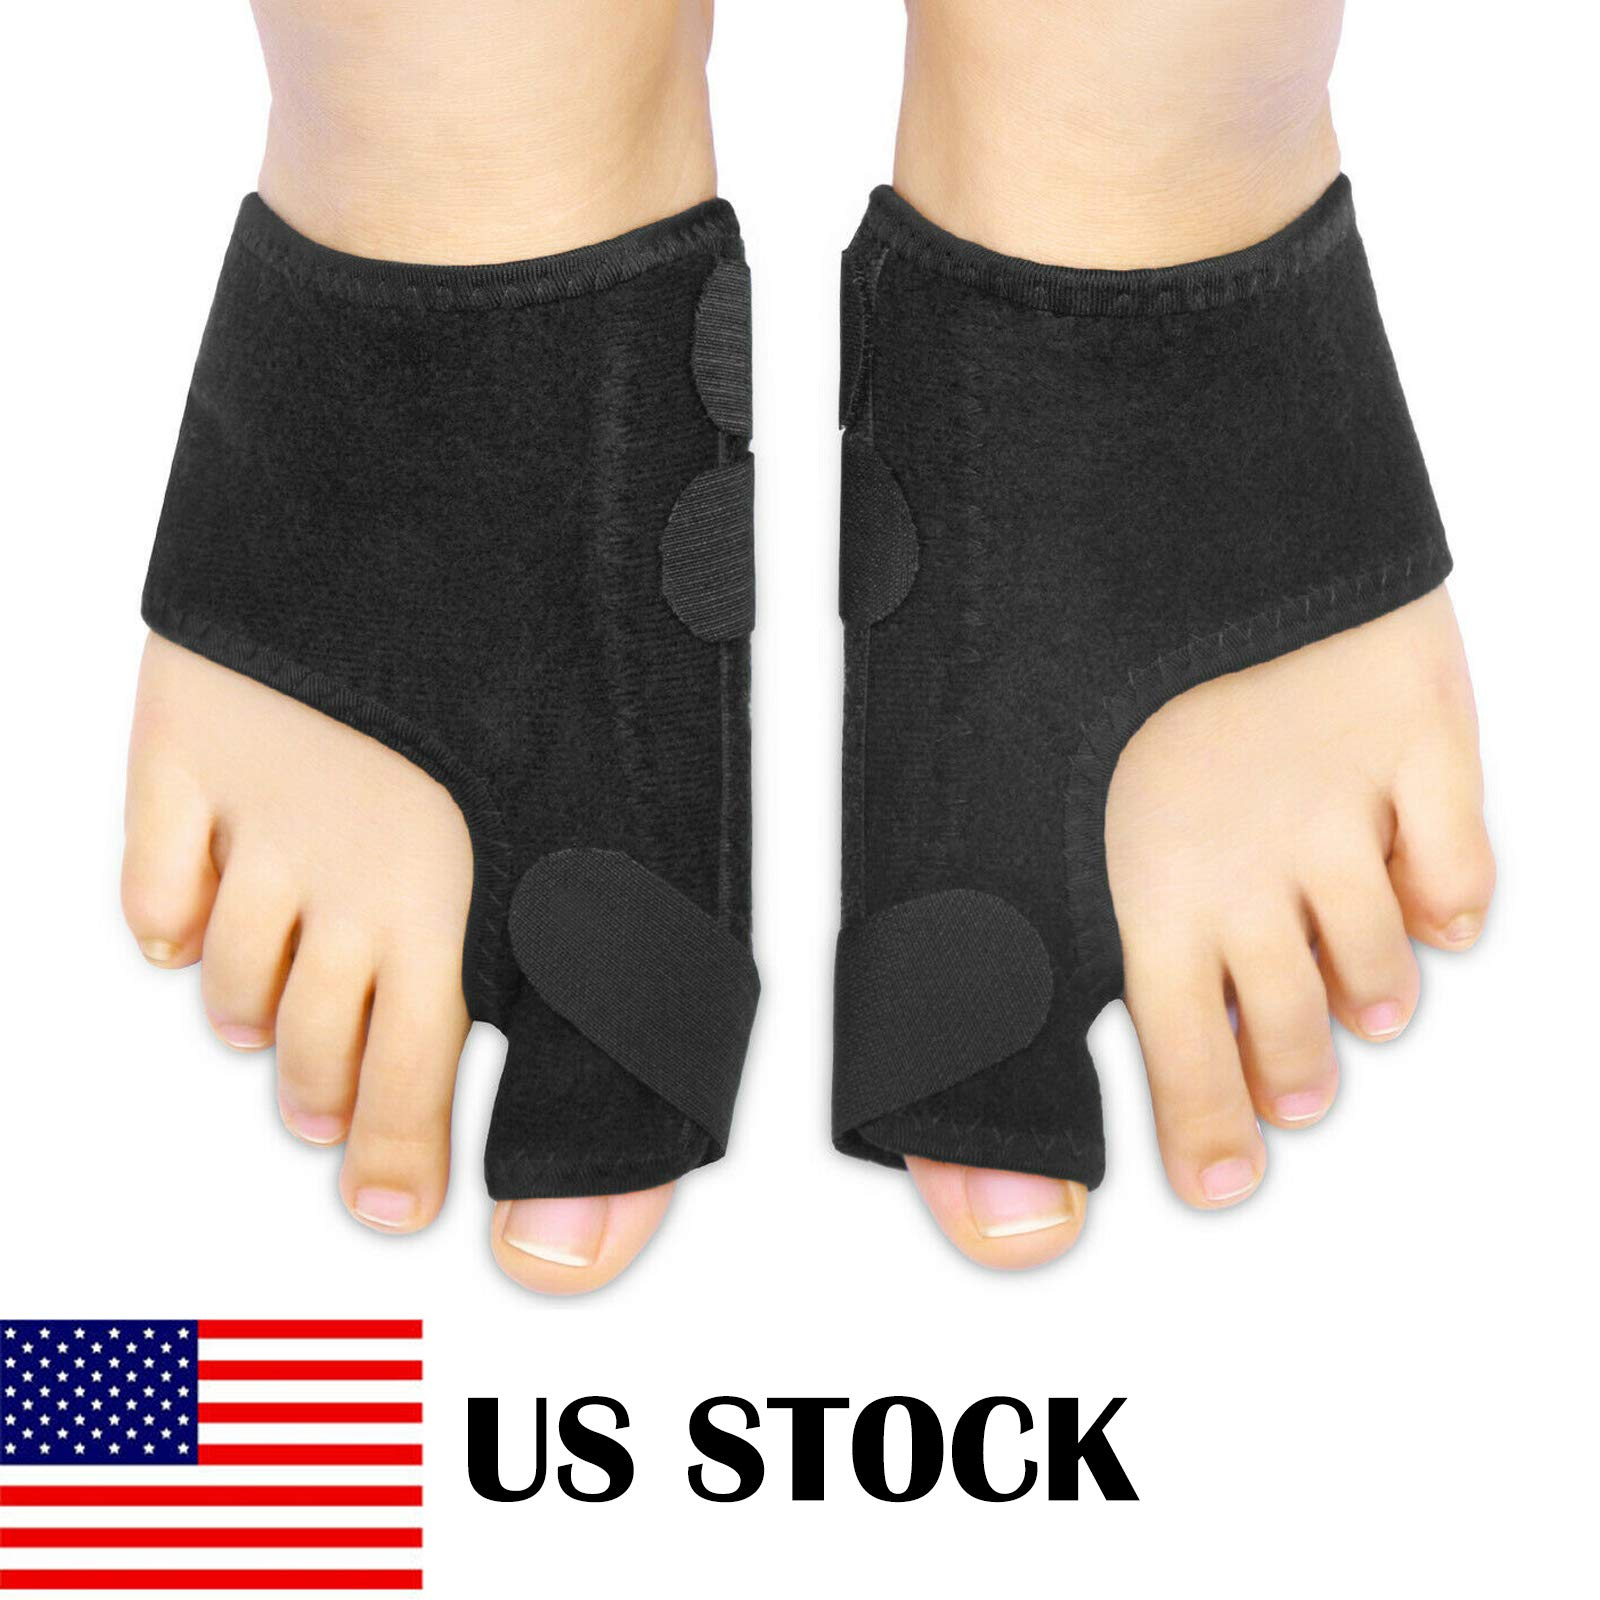 Bunion Corrector &Relief Sleeve with Gel Pads Cushion Splint Orthopedic Prote by Rubyshop by Rubyshop